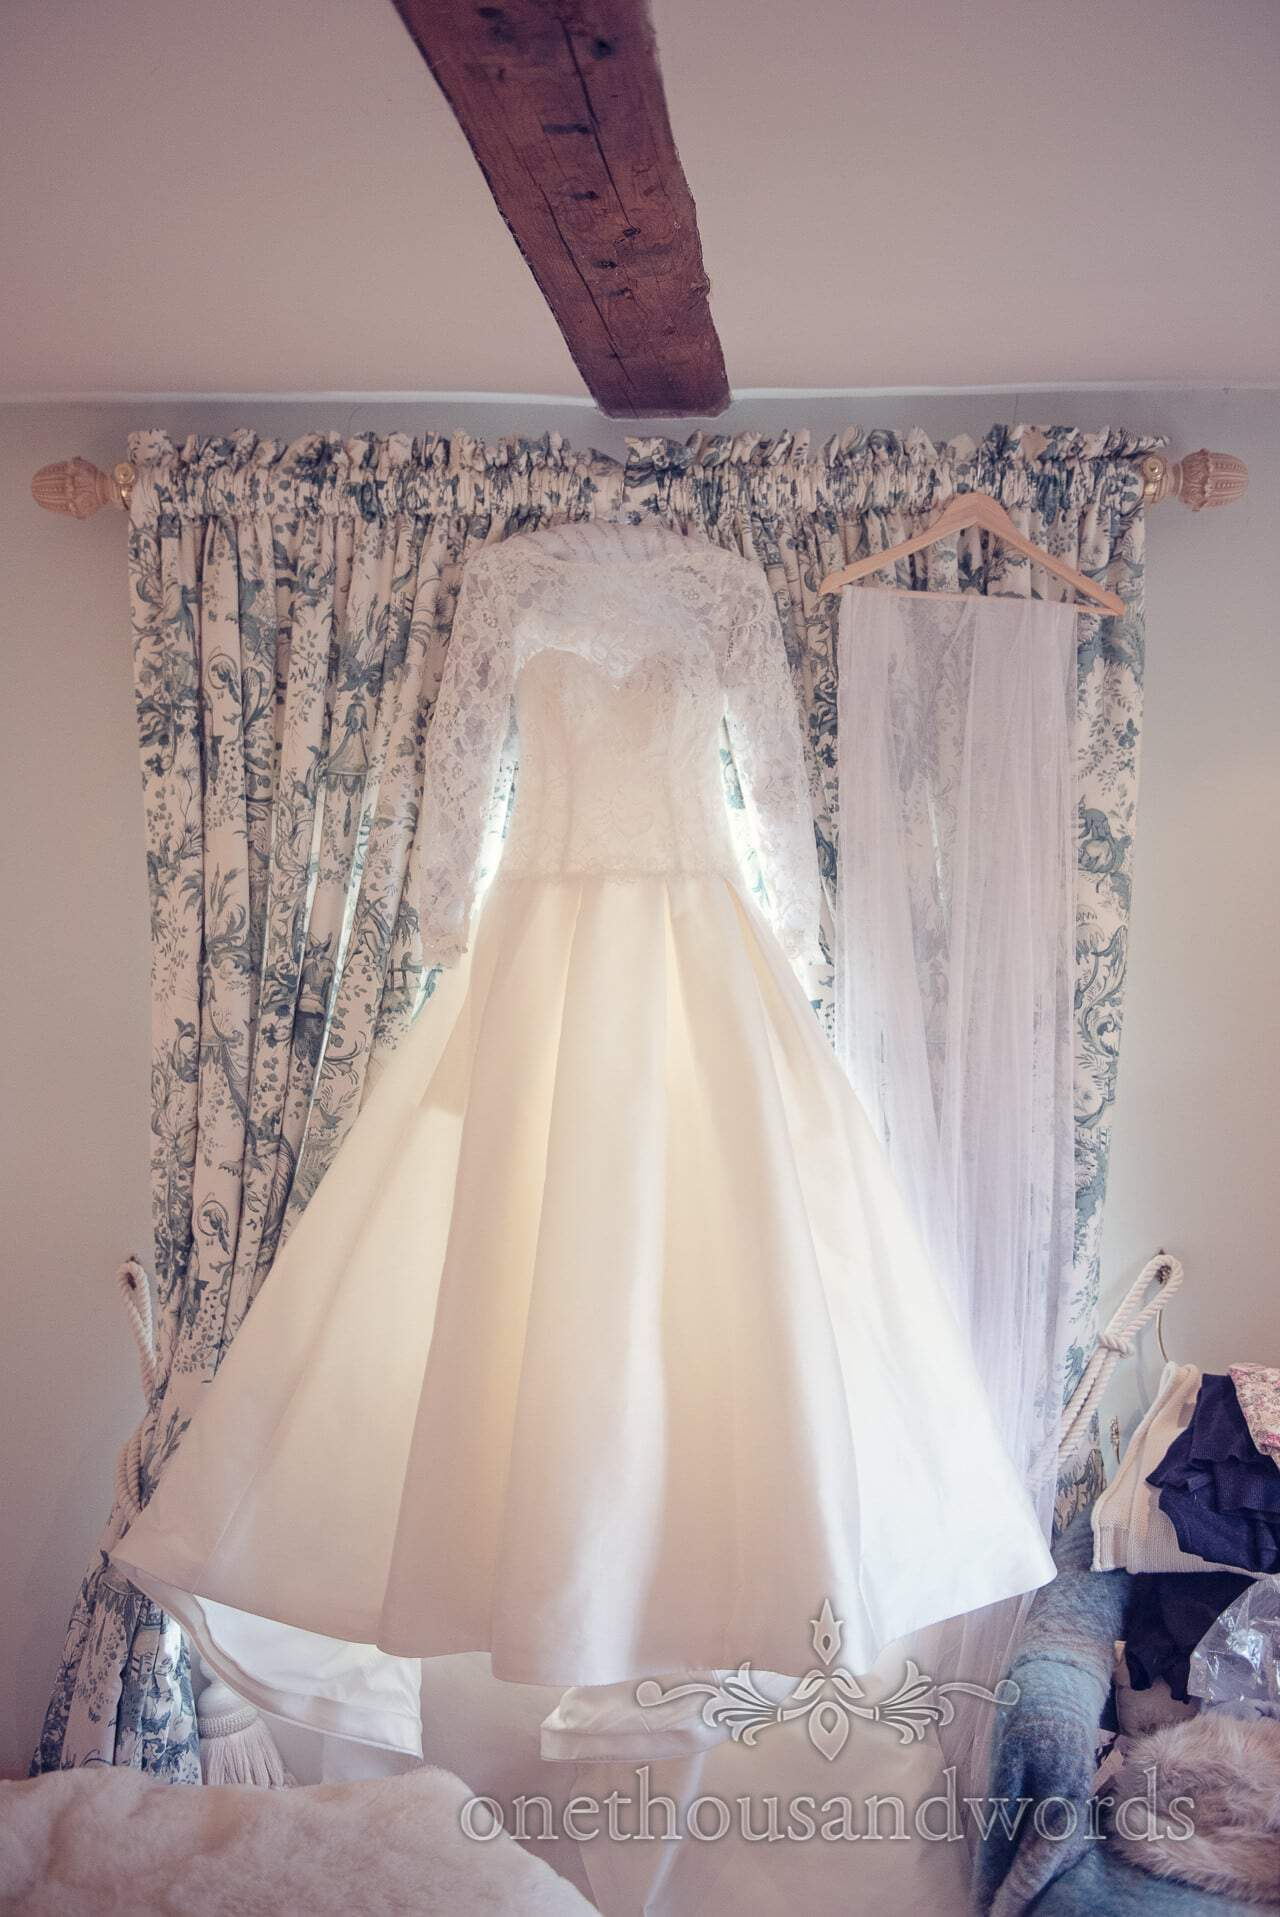 Custom wedding dress with pockets hanging in window with veil